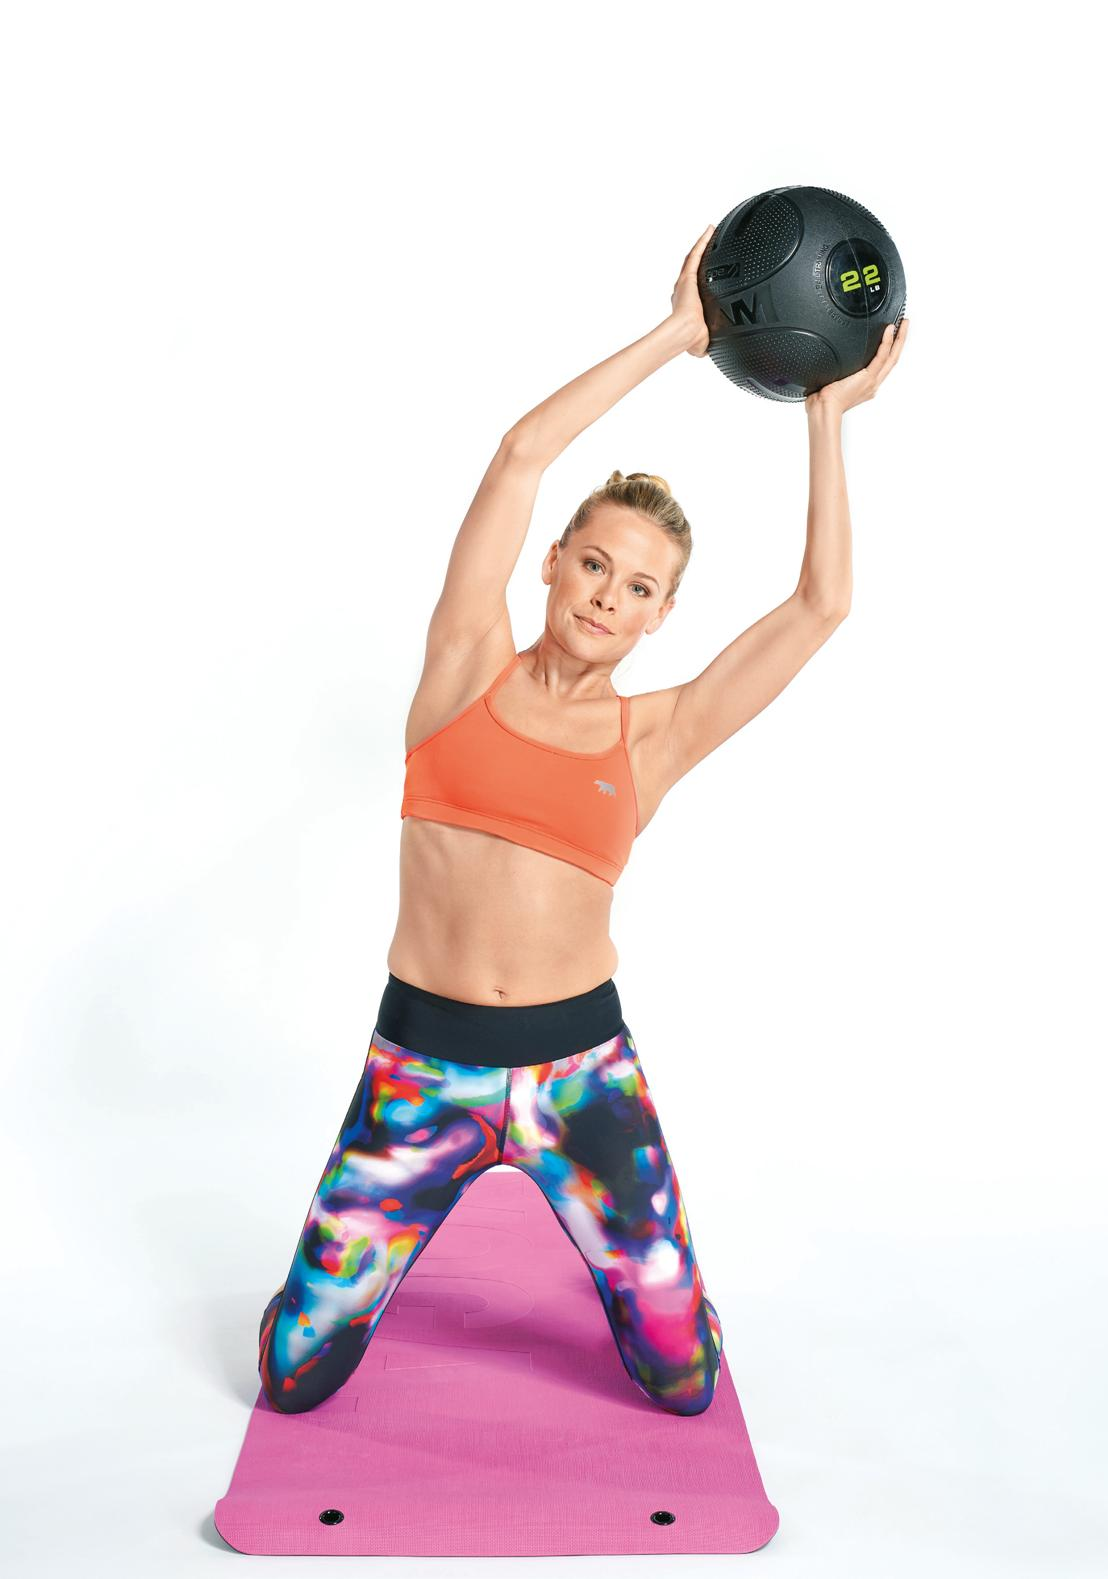 8 Moves For Better Abs